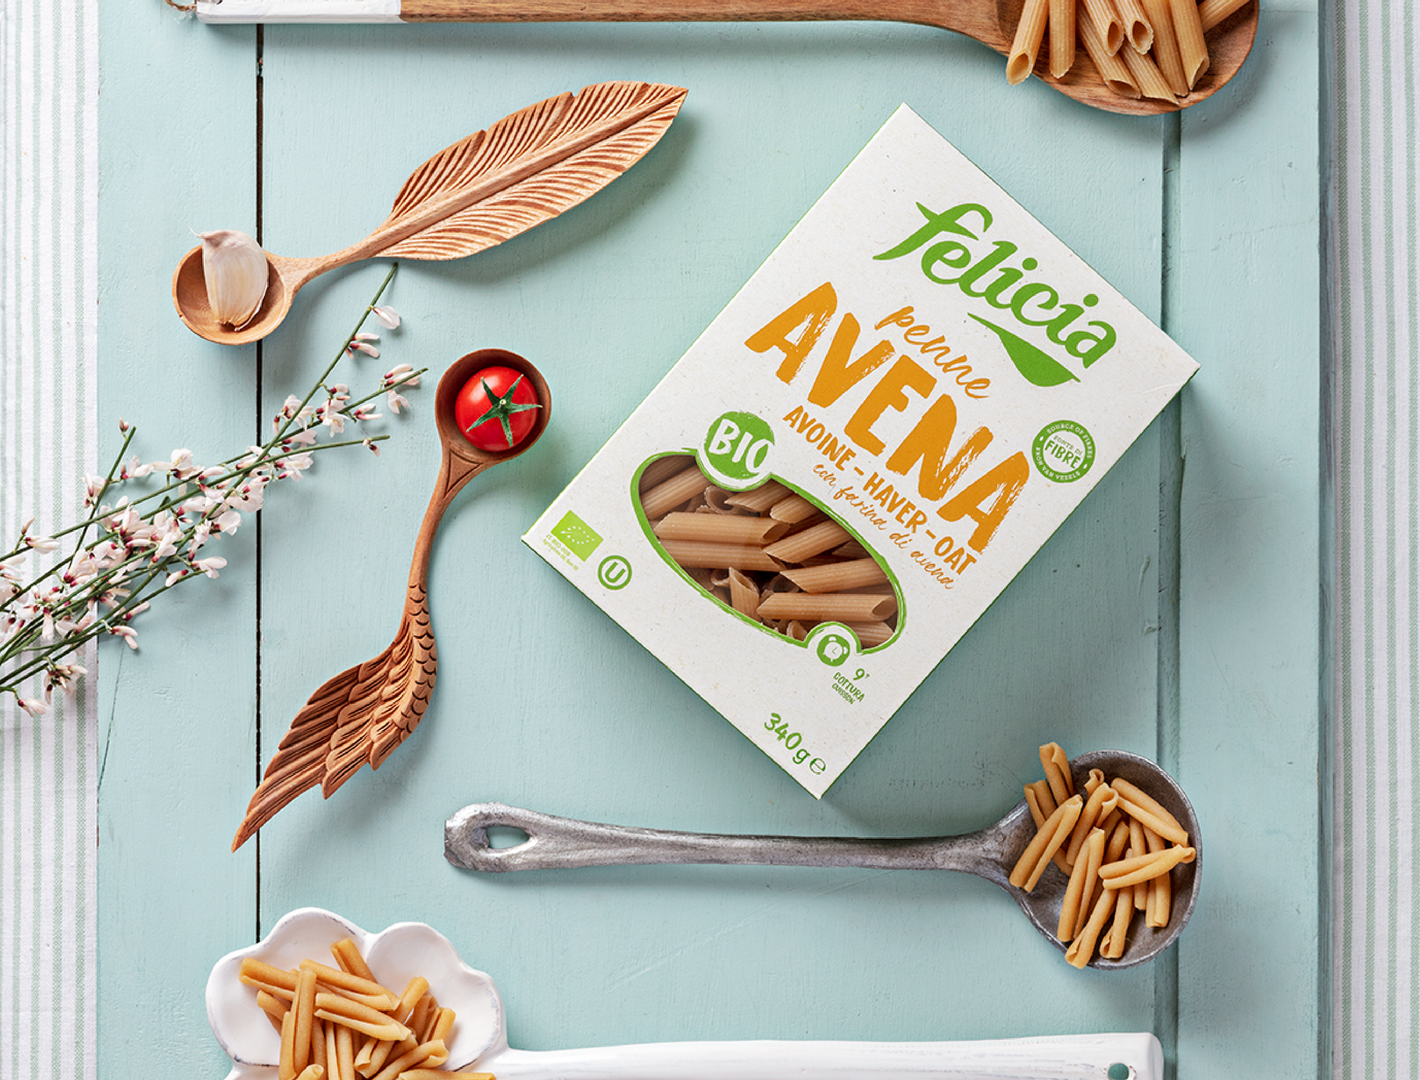 Avena packaging